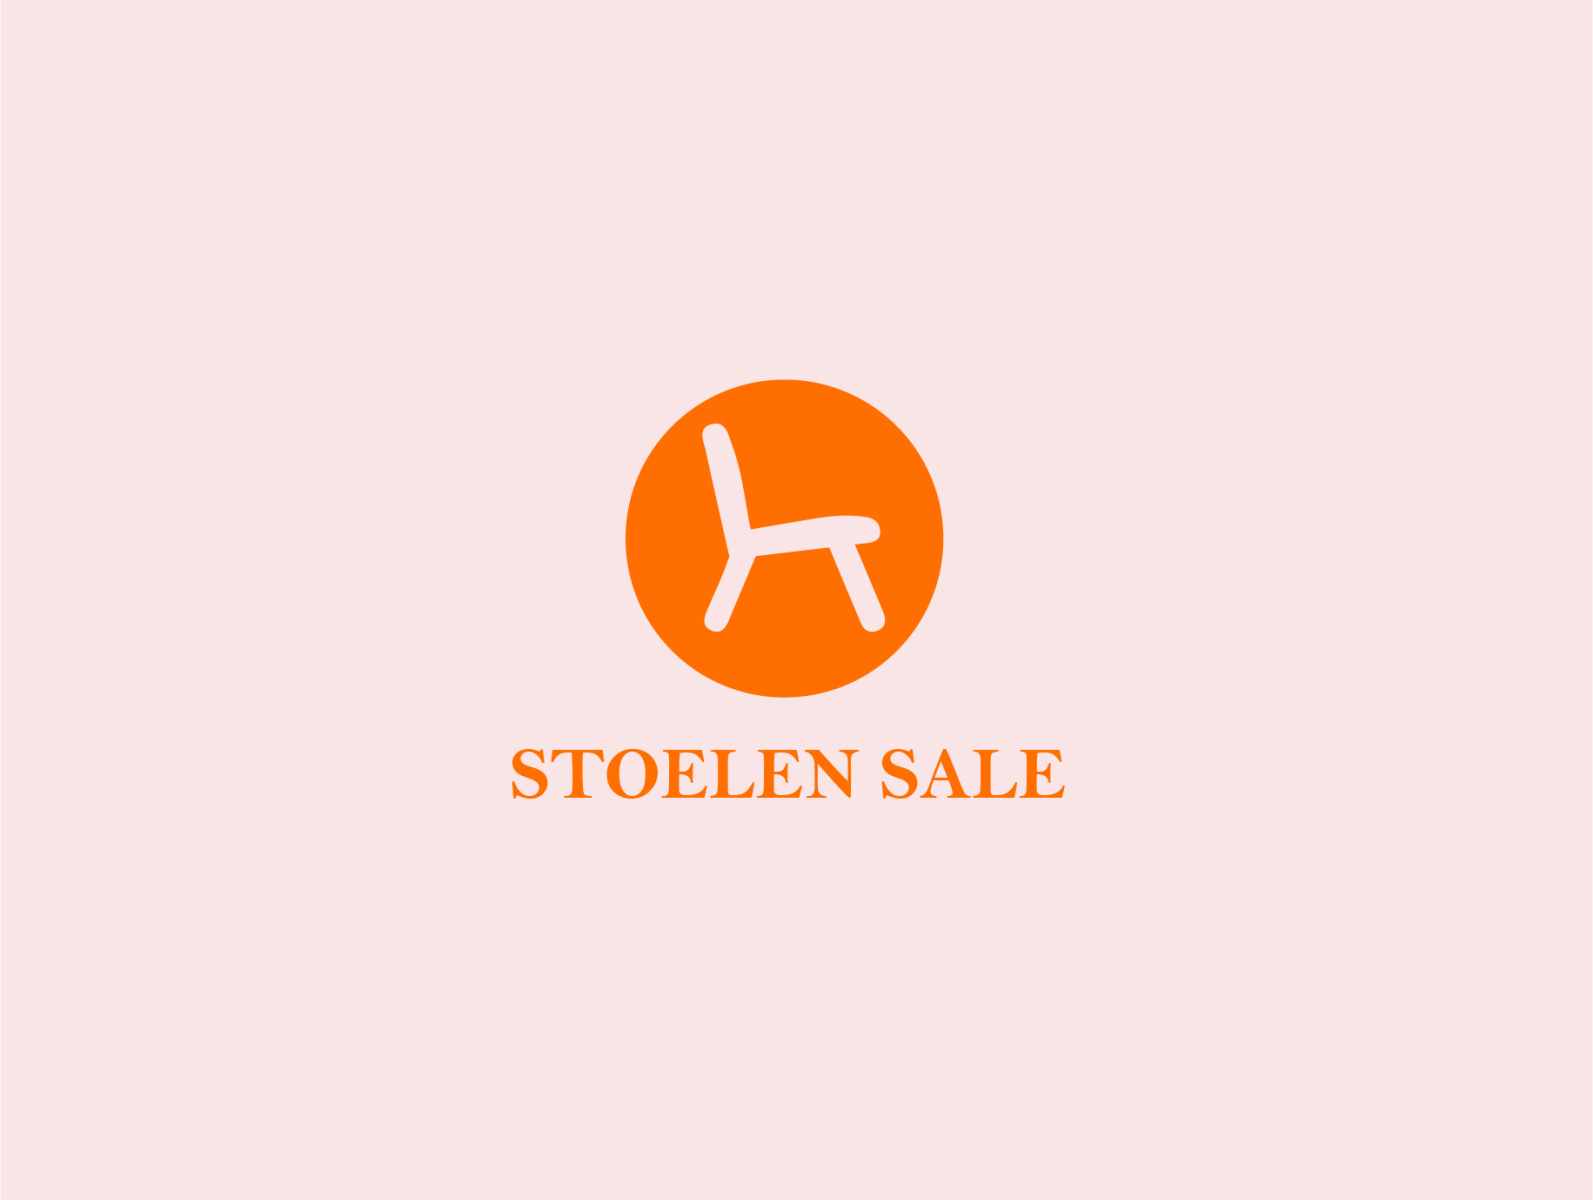 Design Stoelen Sale.Chair Comapany Logo By Md Din Islam On Dribbble